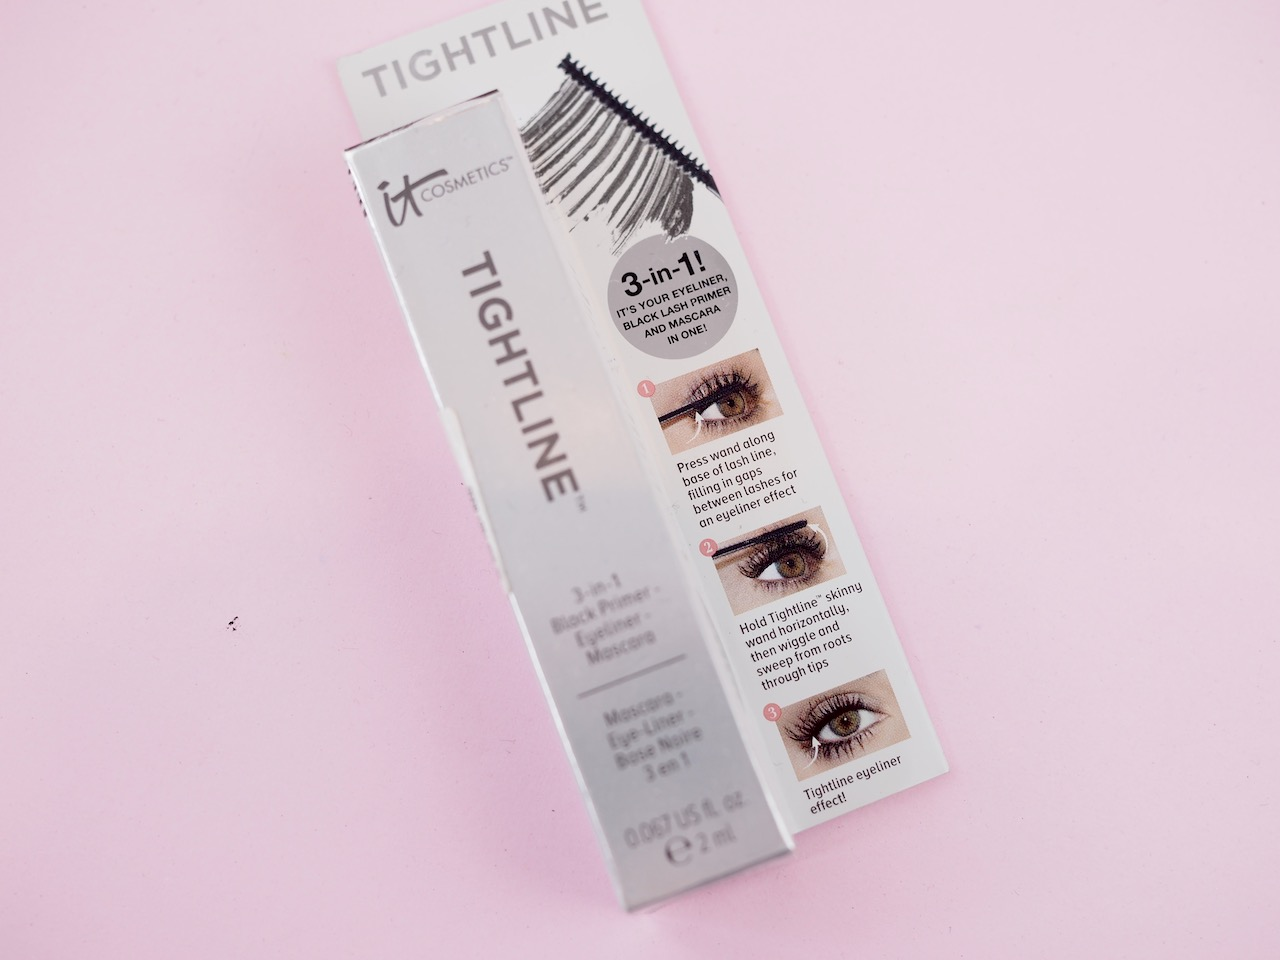 It cosmetics tightline mascara